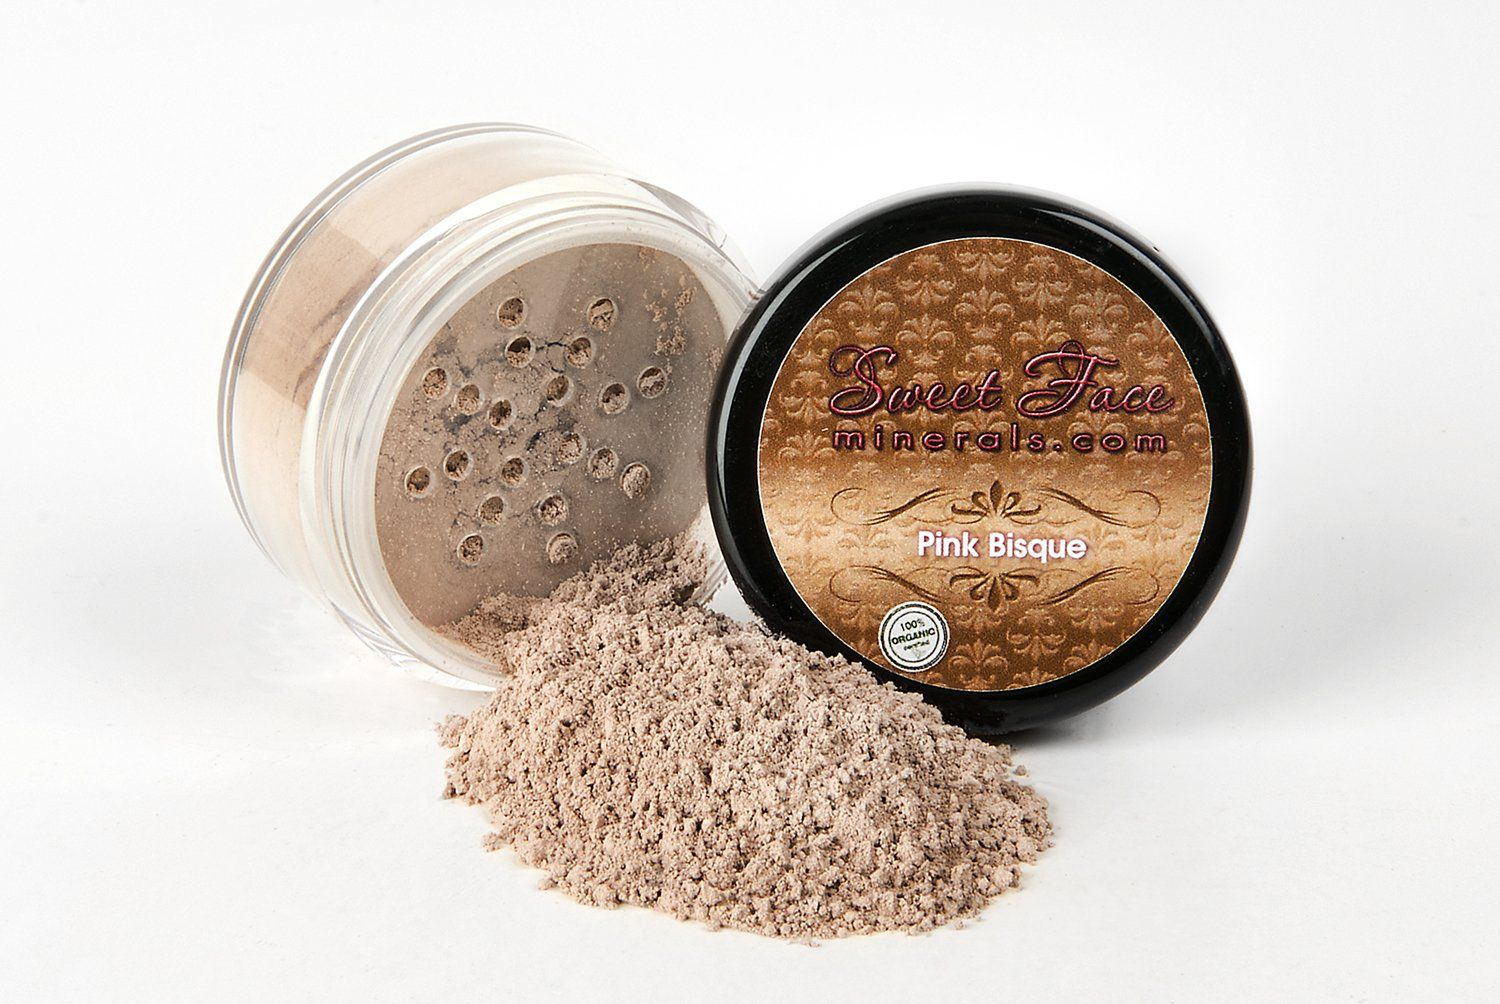 PINK BISQUE FOUNDATION by Sweet Face Minerals Sample to